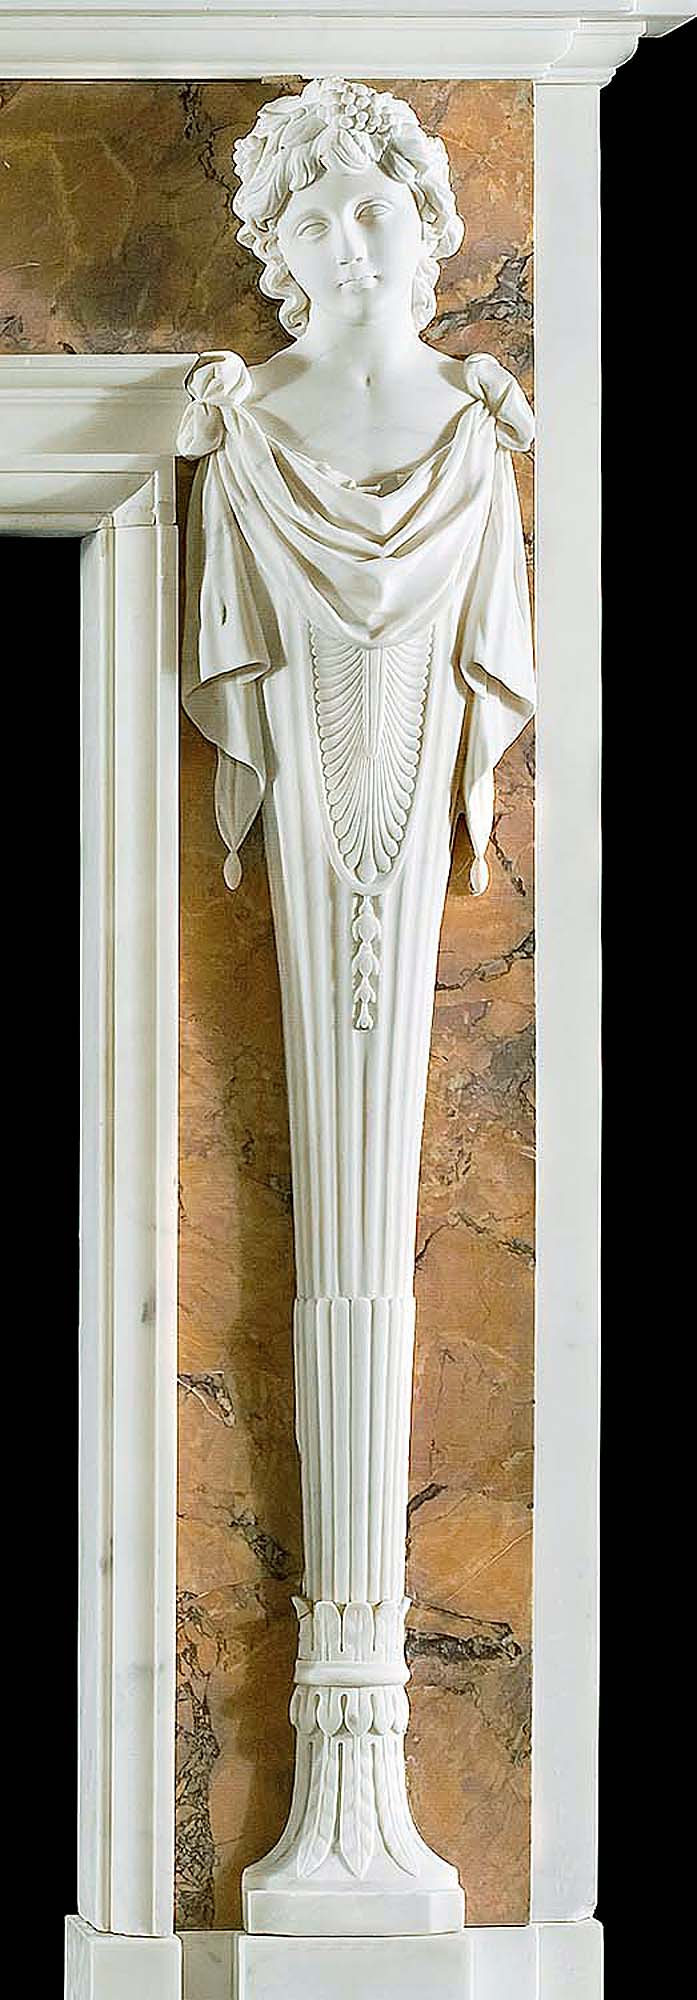 A 20th century decorative marble chimneypiece in the manner of Henry Cheere.